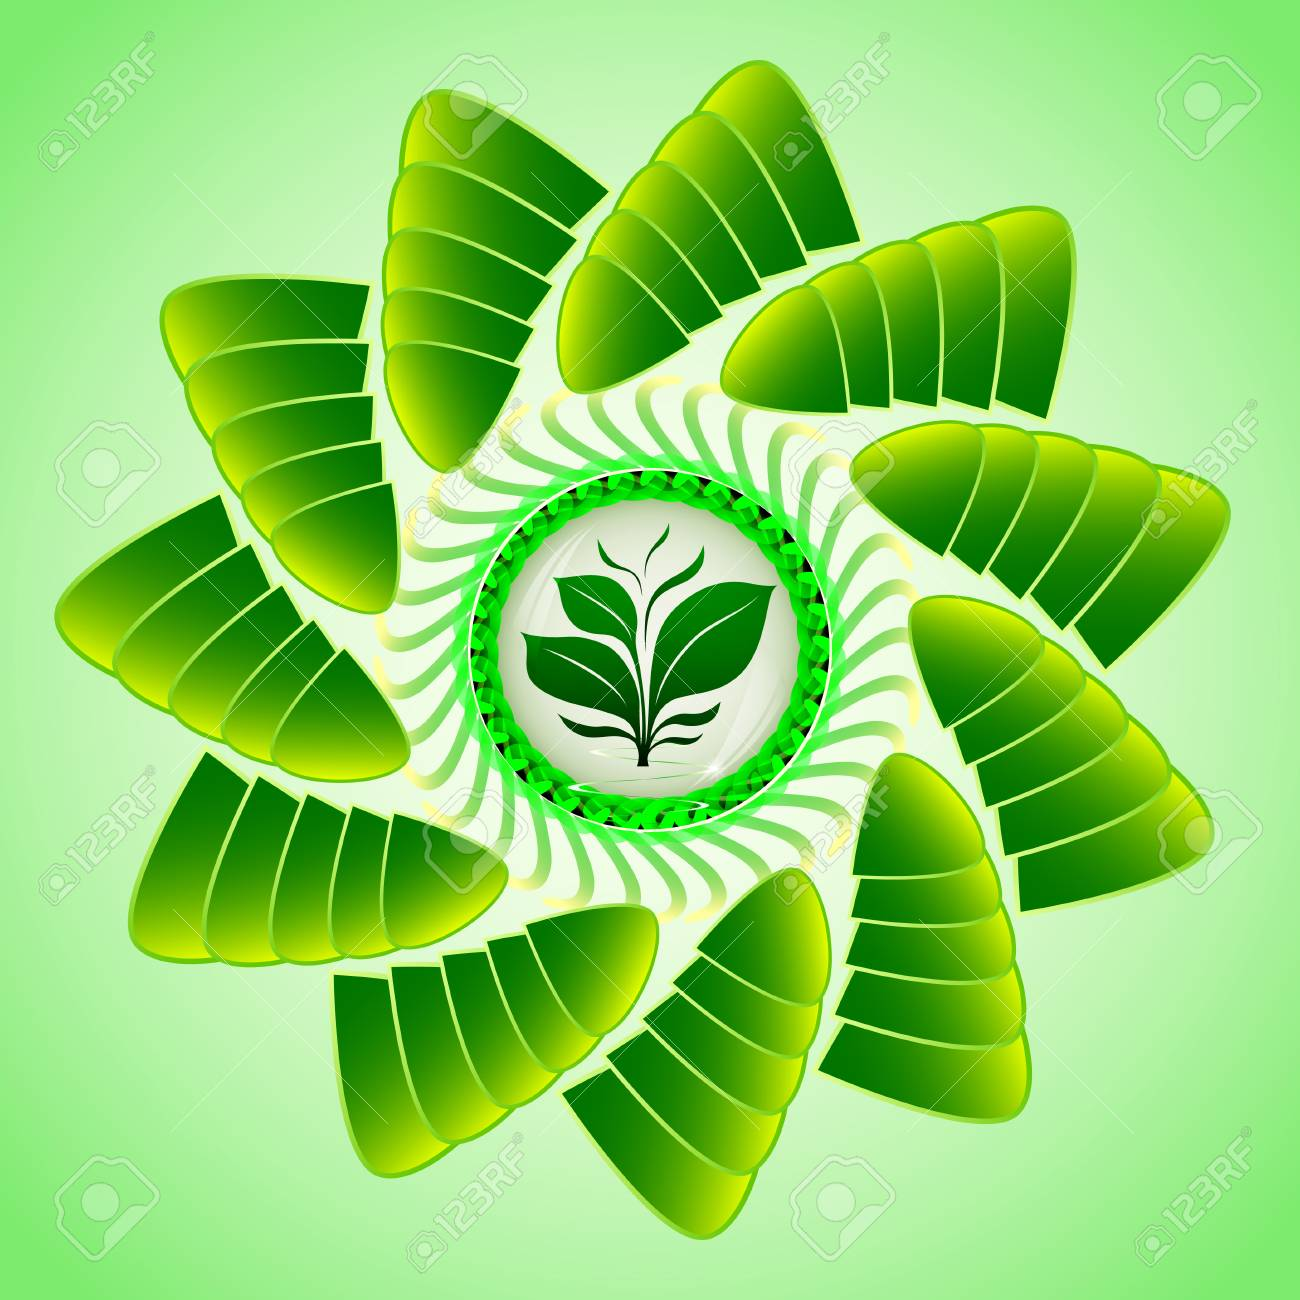 Green As A Symbol Images Definition Of Symbolism In Literature